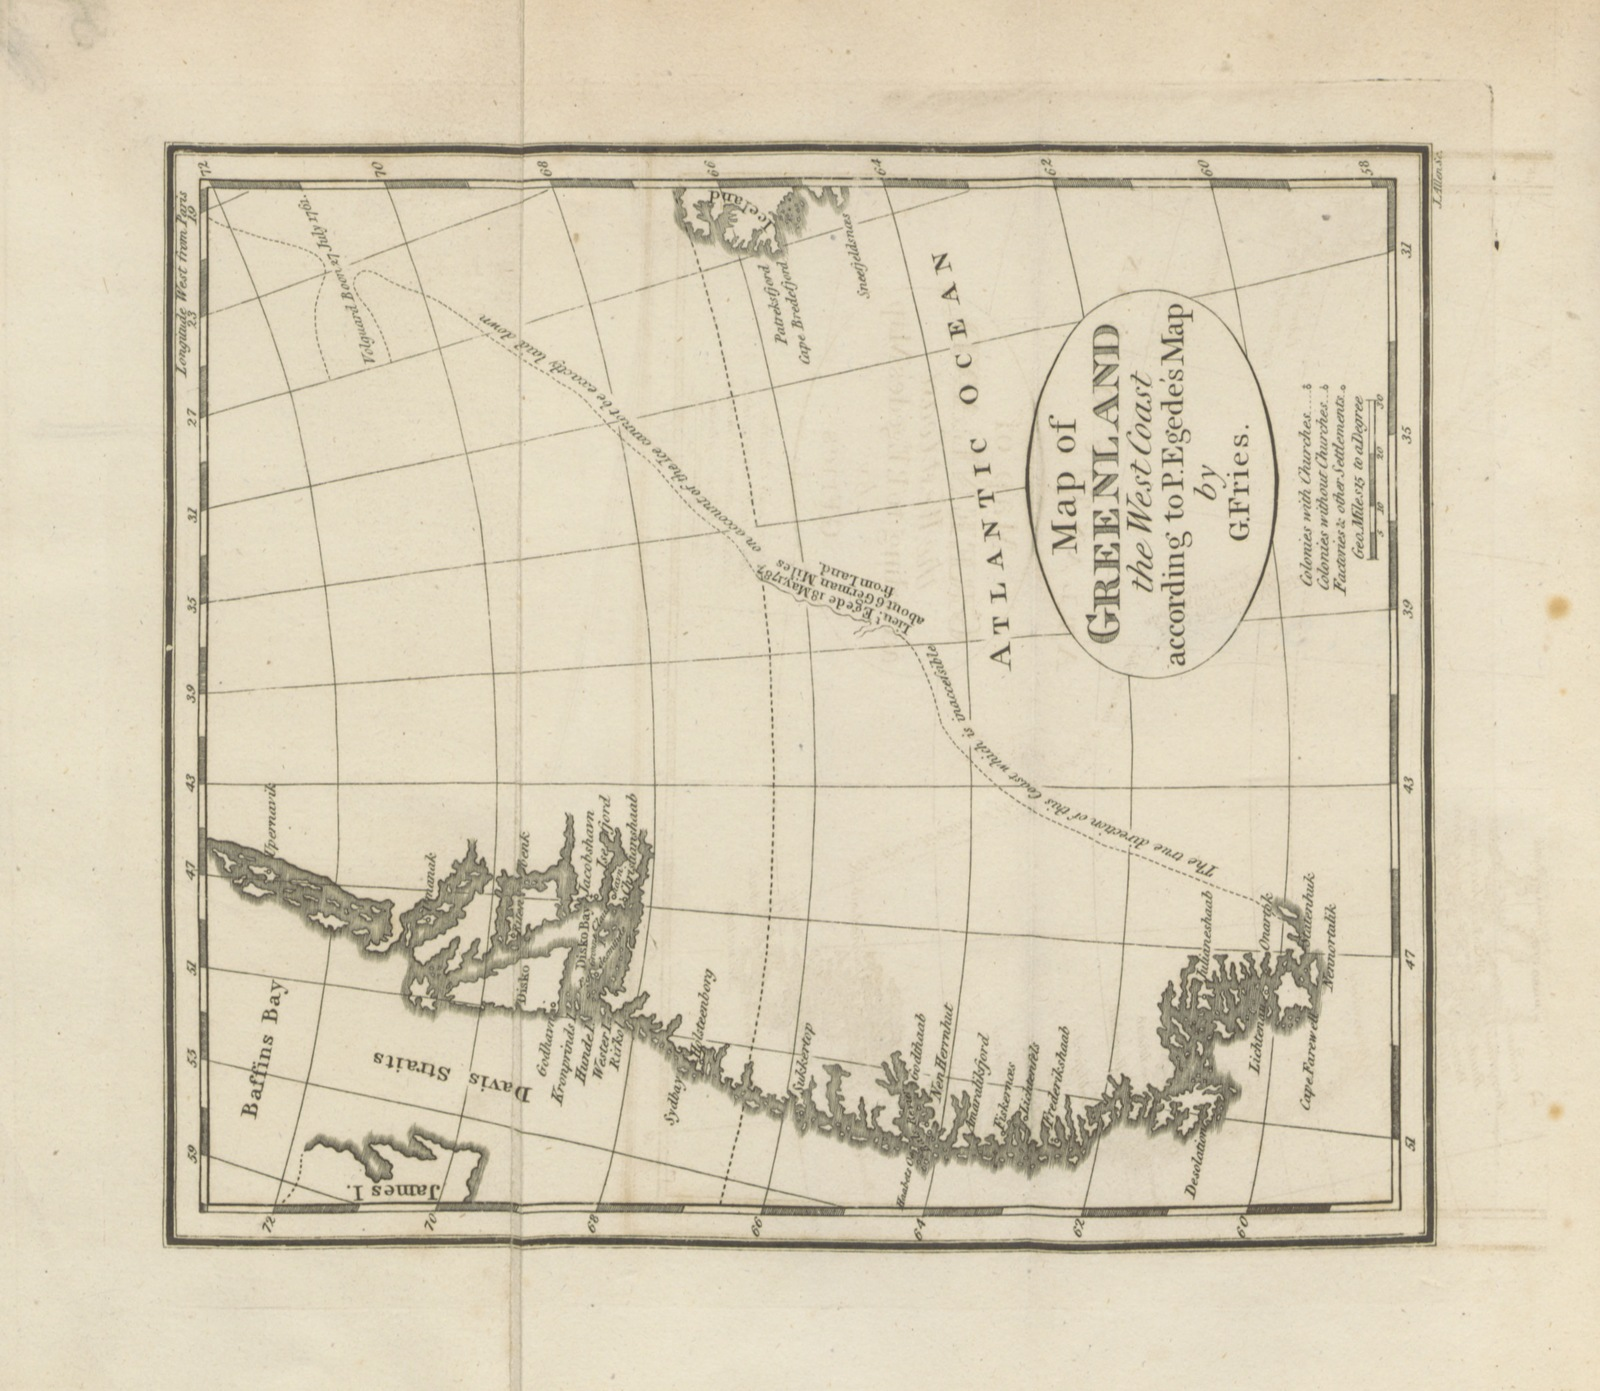 """map from """"Greenland: being extracts from a journal kept in that country in ... 1770 to 1778. ... to which is prefixed, an introduction containing some accounts of the manners of the Greenlanders, and of the mission in Greenland ... by G. Fries. Translated from the German [by H. E. Lloyd]"""""""